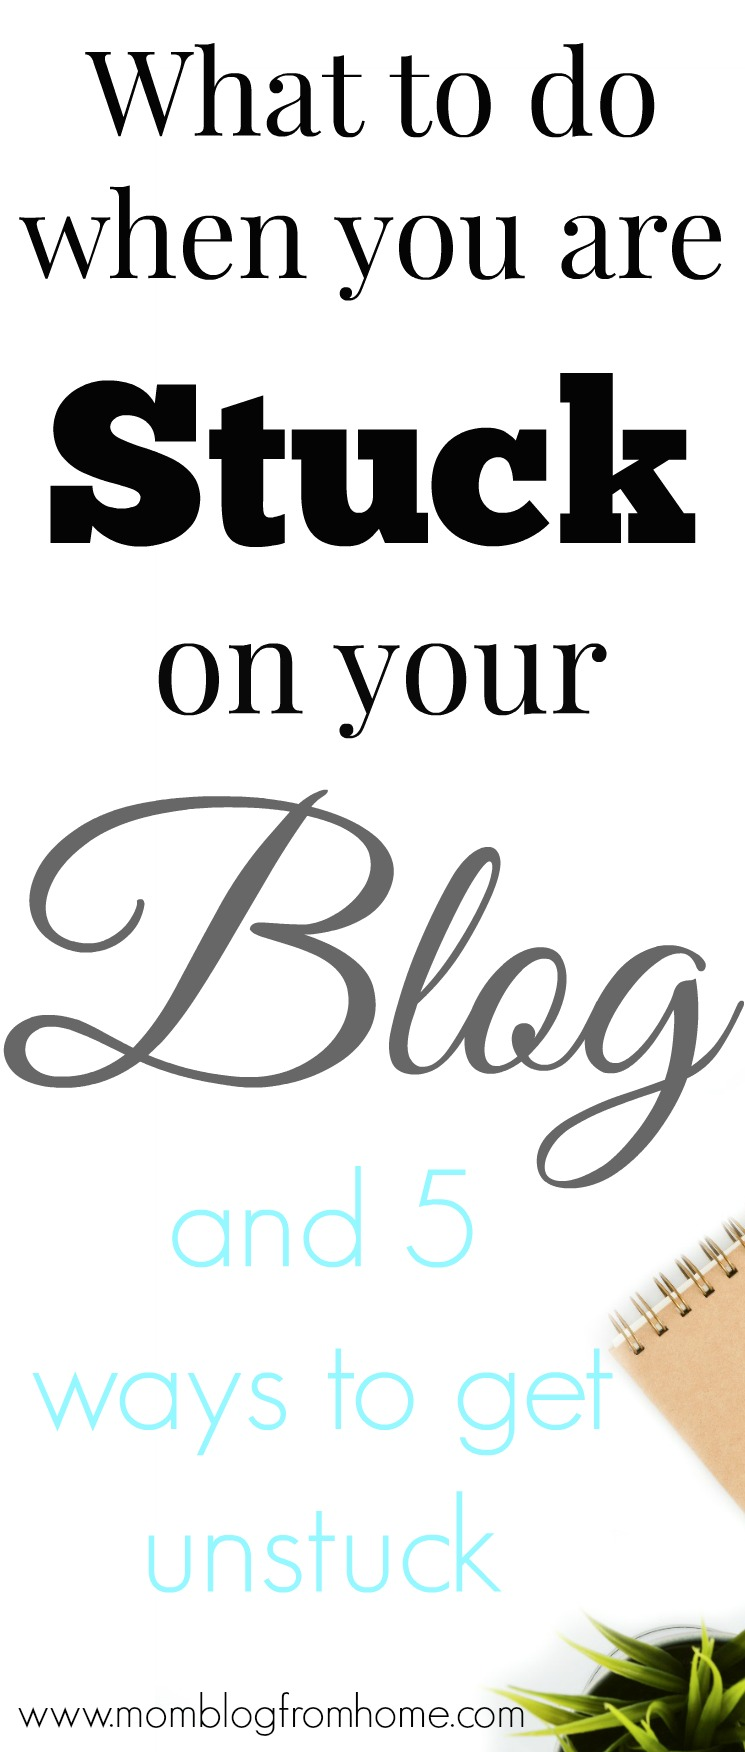 What to do when you are stuck on your blog and 5 ways to get unstuck - mom blog from home